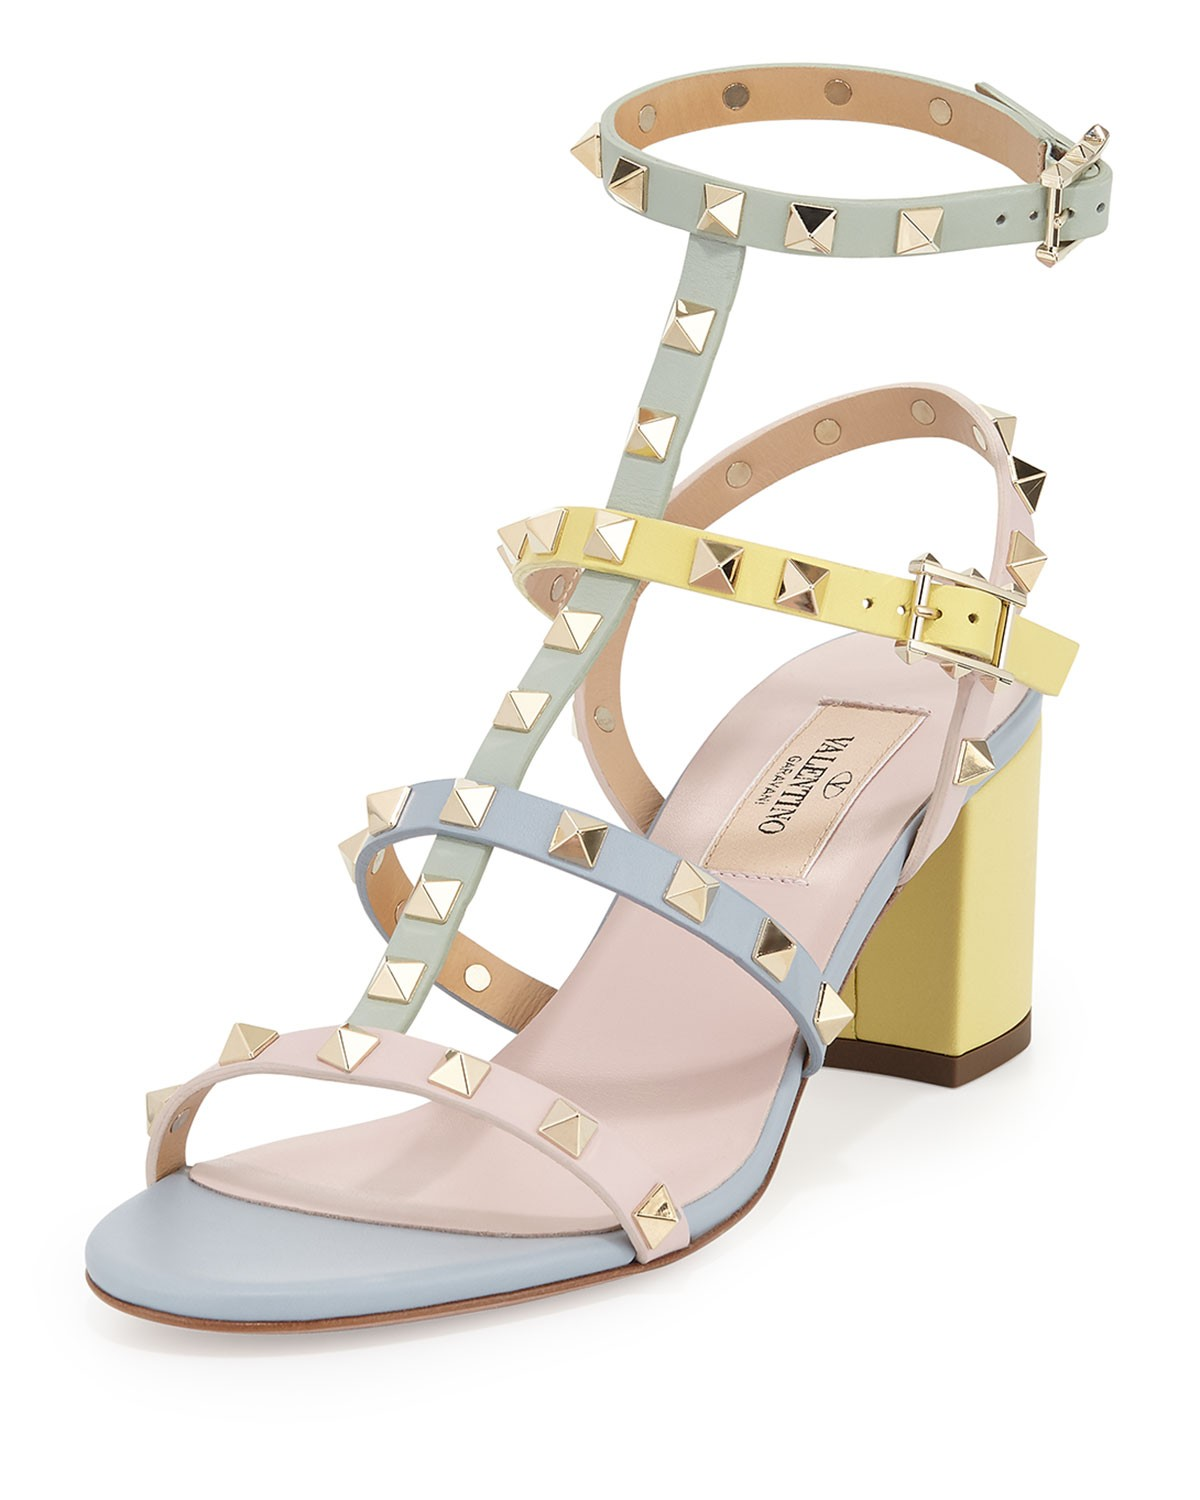 Rockstud Leather City Sandal, Watercolor - Valentino - Watercolor (35.0B/5.0B)